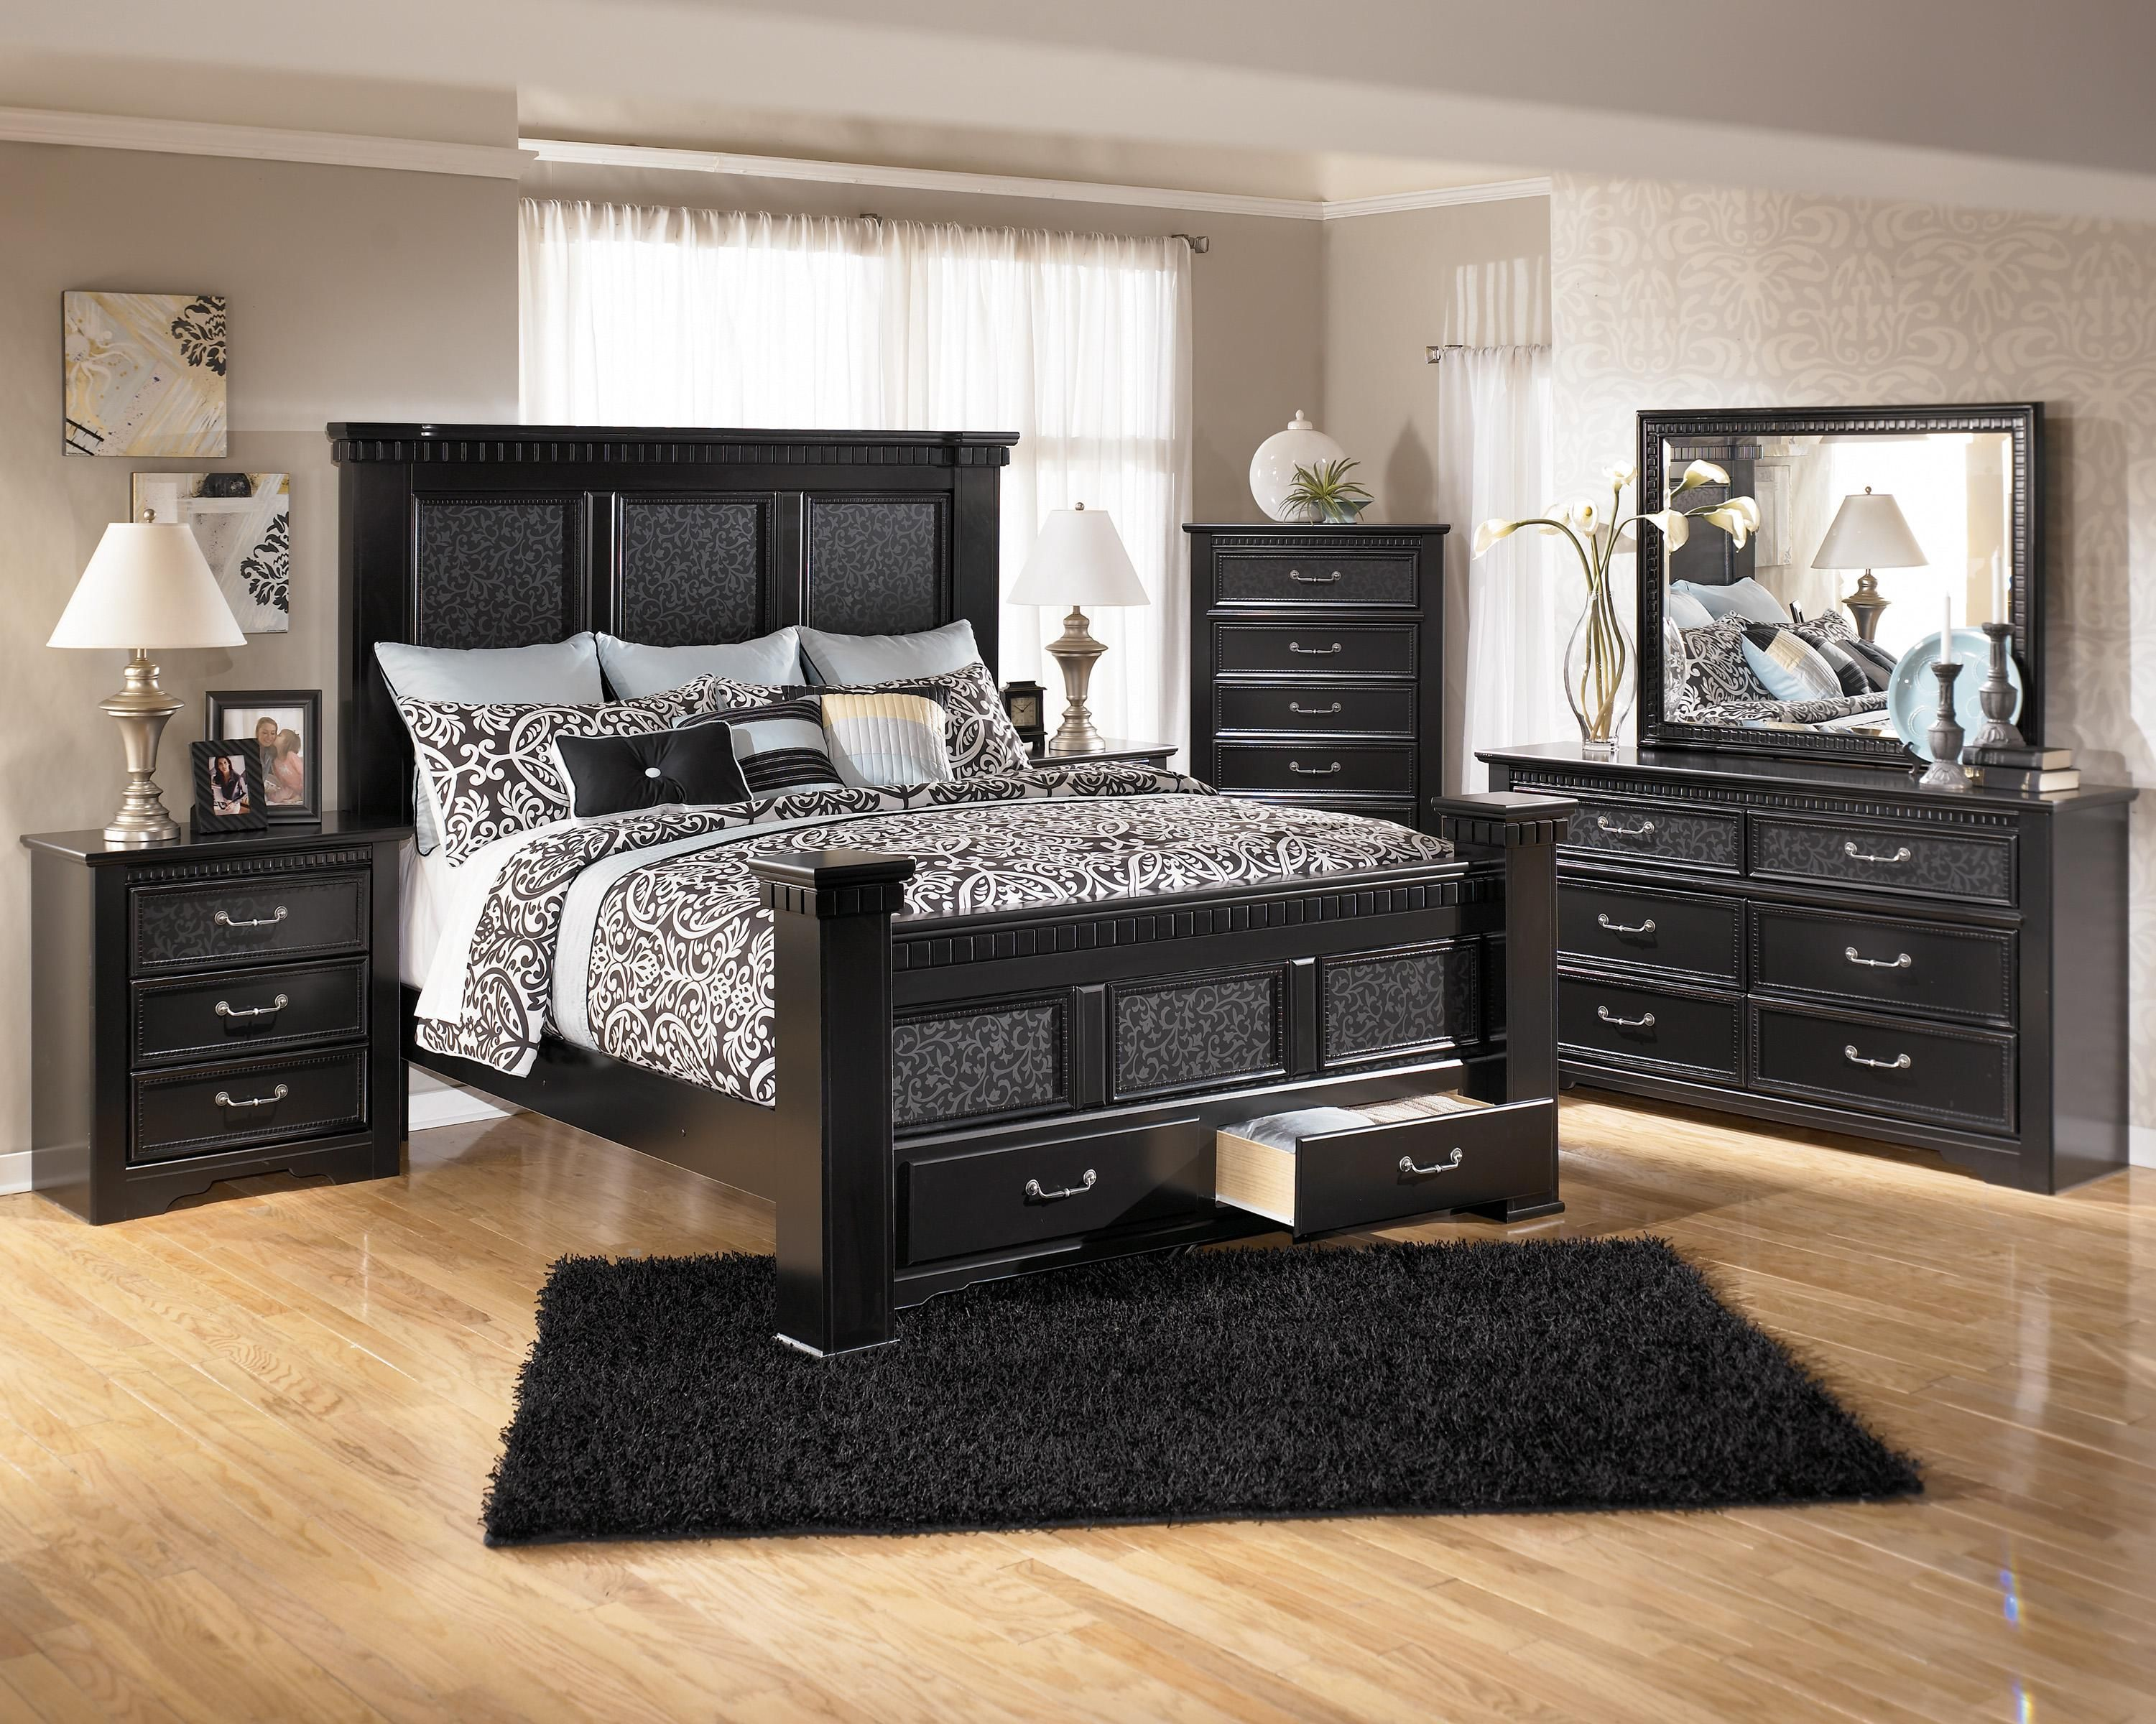 Make Your Bedroom Stand Apart With Black Bedroom Sets Darbylanefurniture Com In 2020 Ashley Furniture Bedroom Master Bedroom Set Bedroom Sets